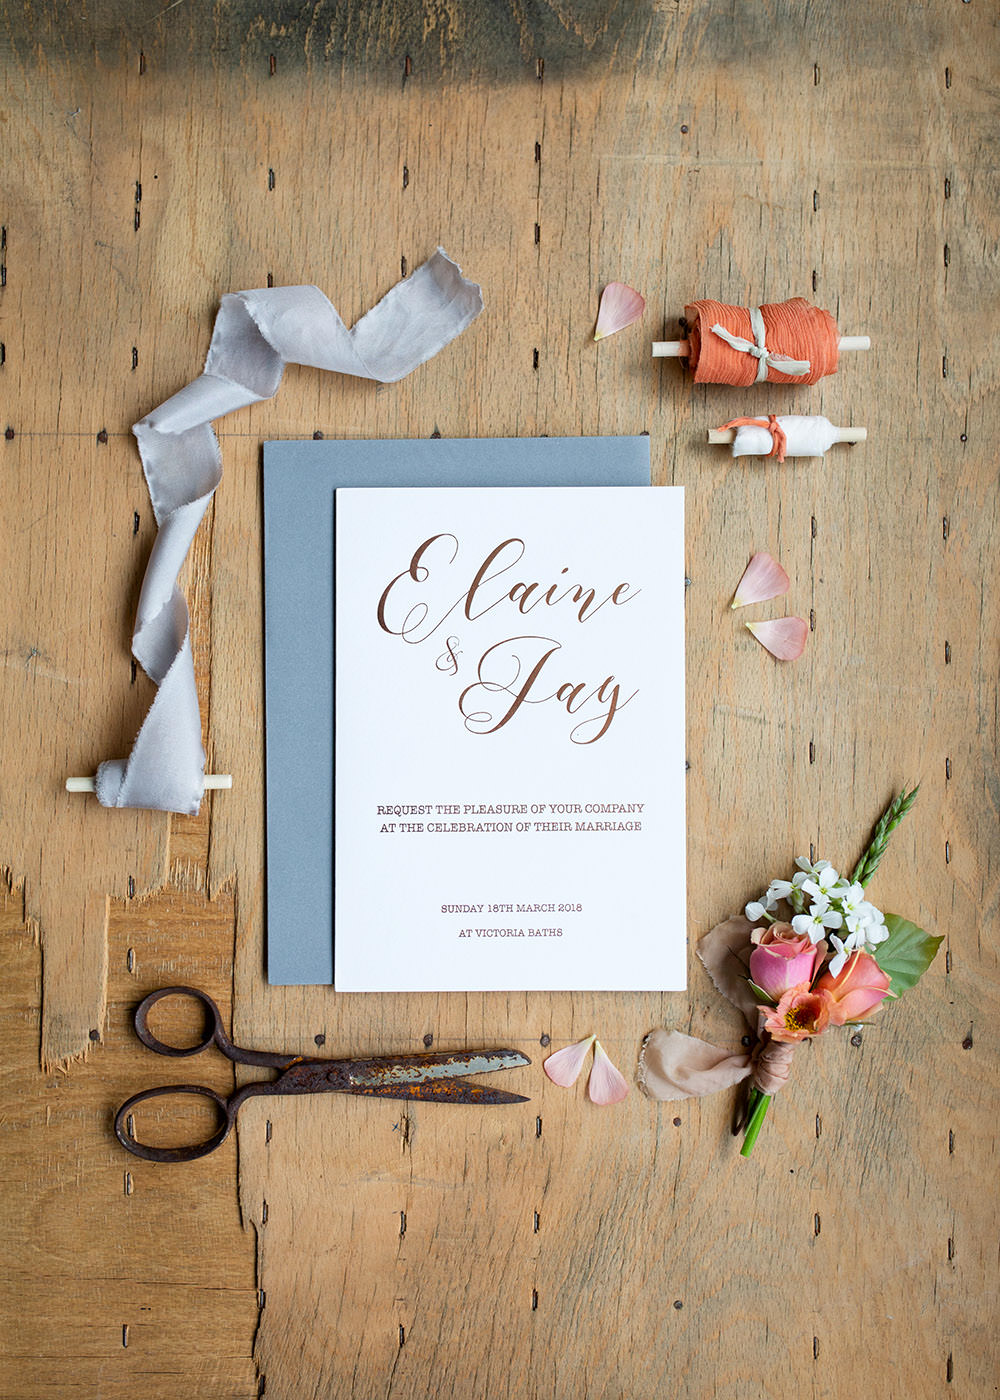 Stationery Suite Invite Invitations Flat Lay Calligraphy Letterpress Blue Grey Light Airy Summer Wedding Ideas Charlotte Palazzo Photography